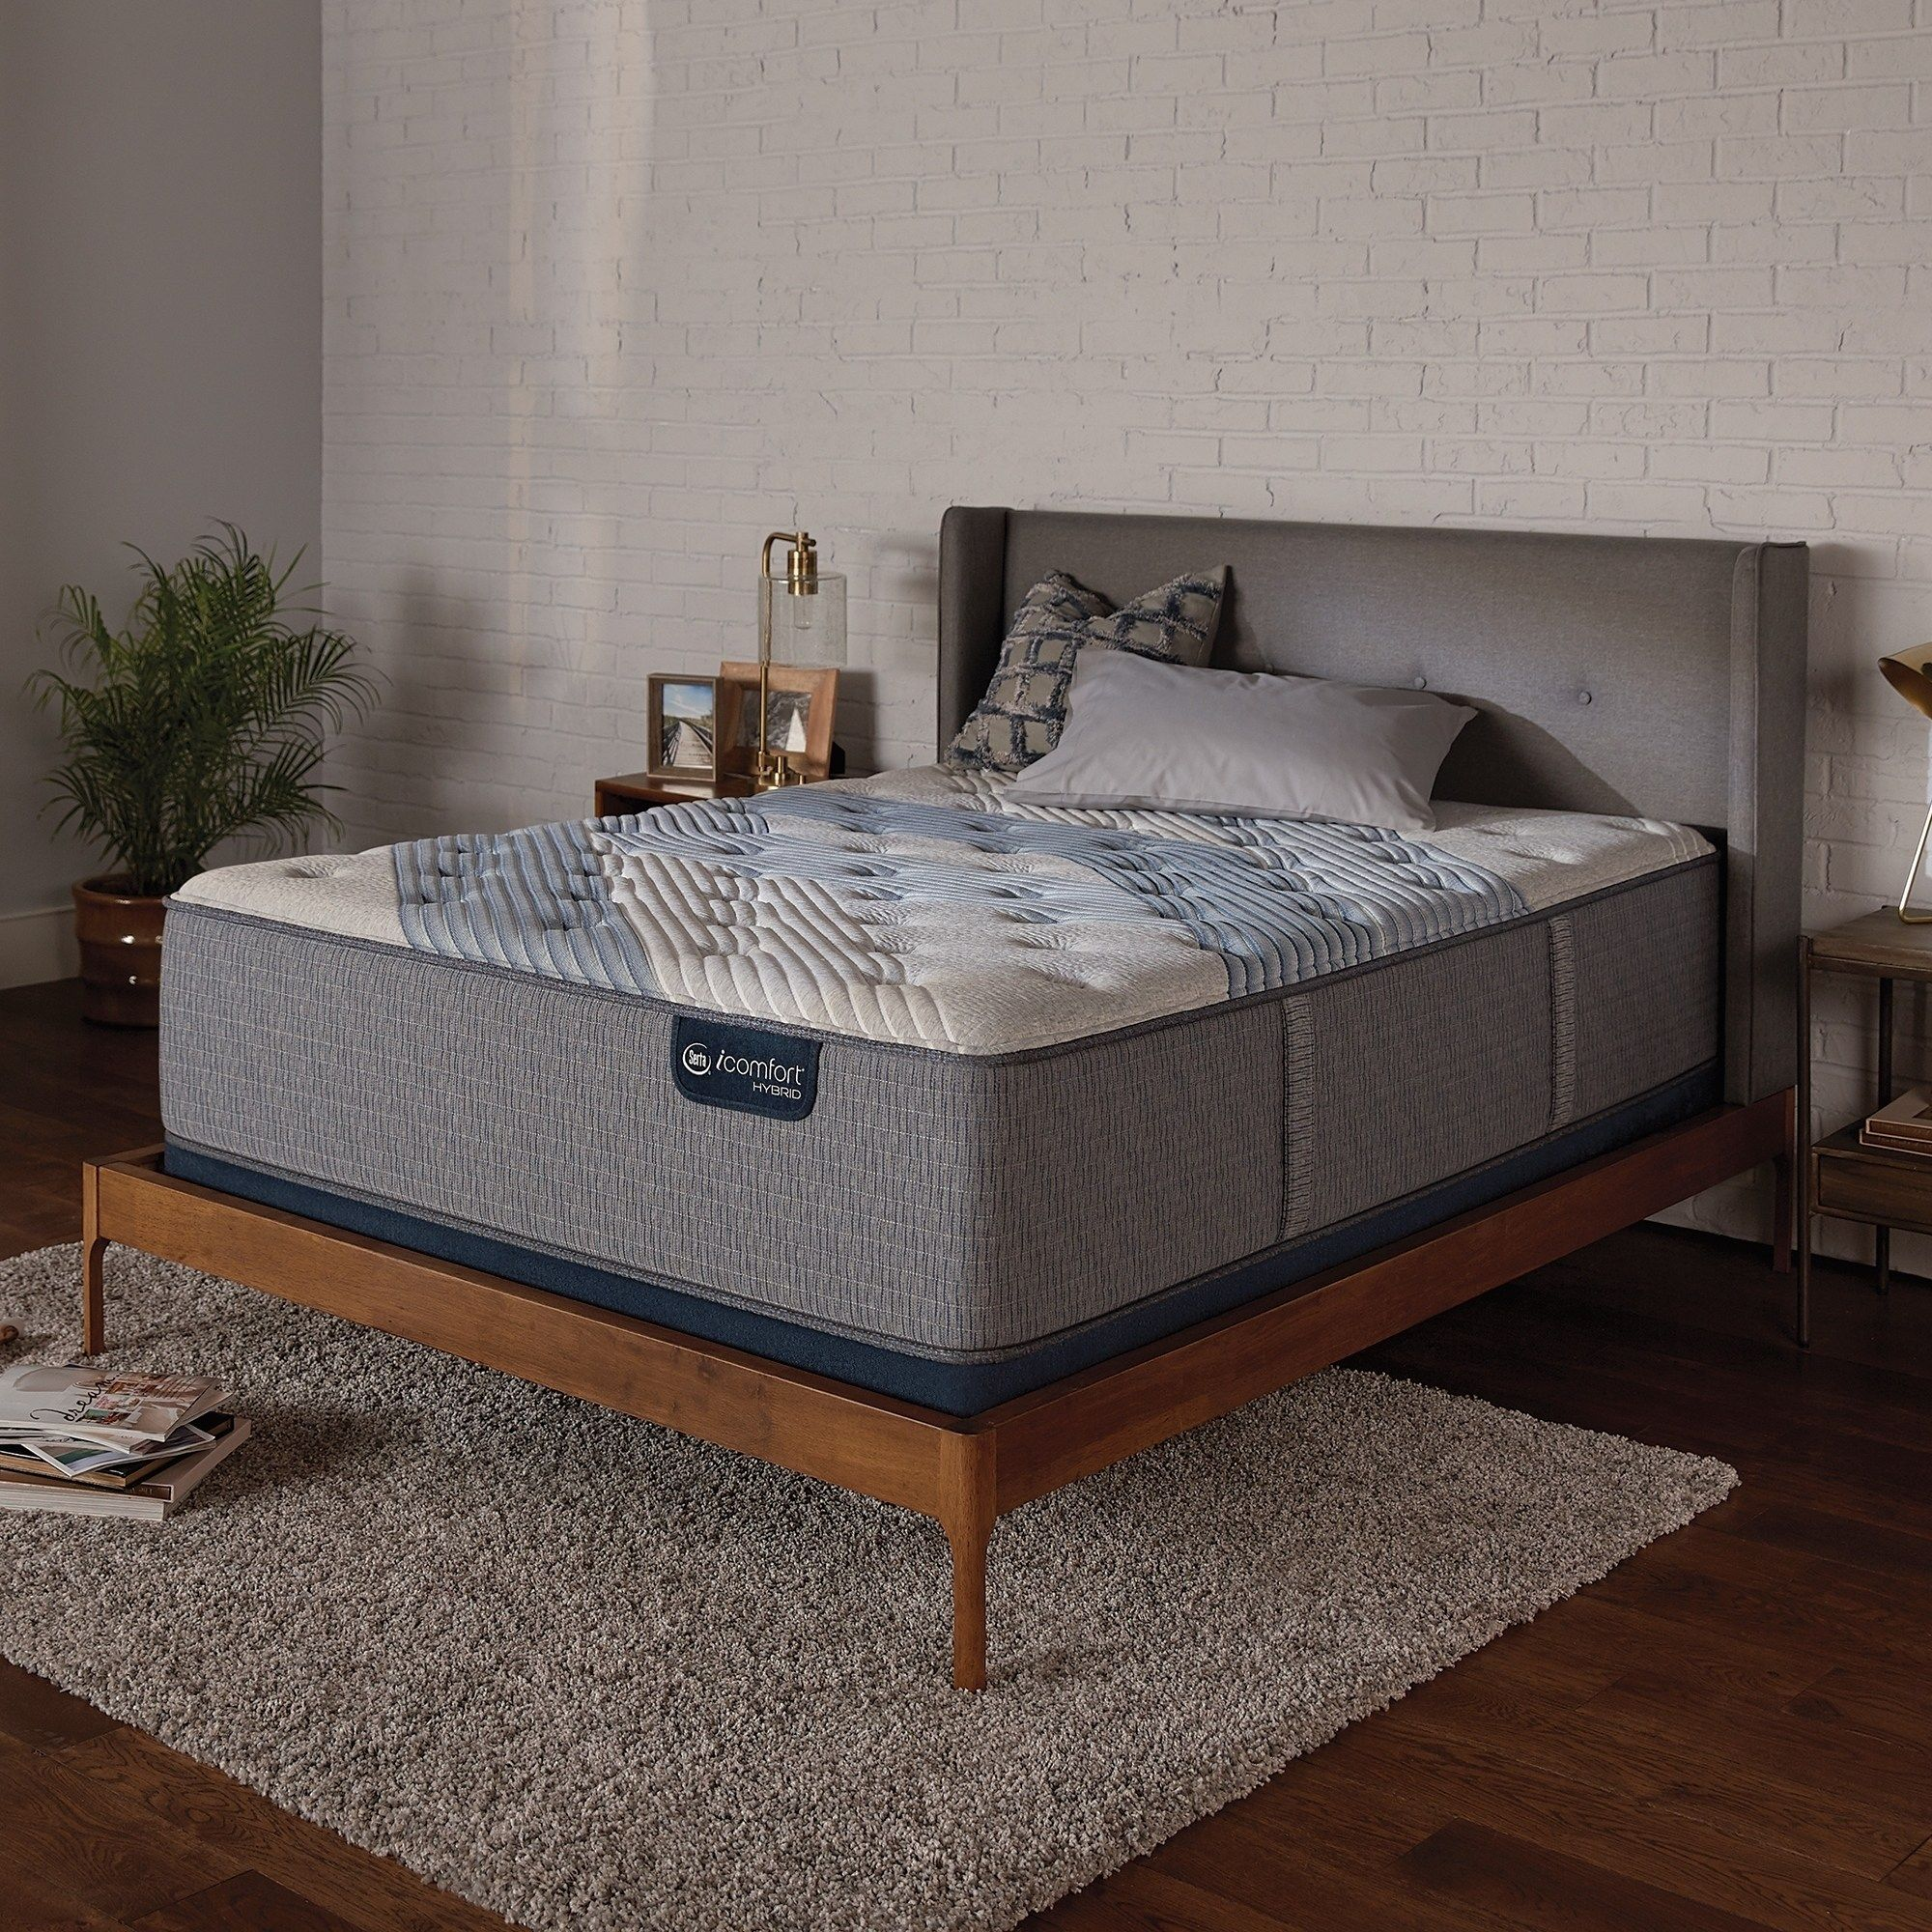 Serta Icomfort Hybrid Blue Fusion 3000 15 Inch Firm Full Size Mattress Full Foundation Not Included Plush Mattress Mattress Sets Mattress Sizes